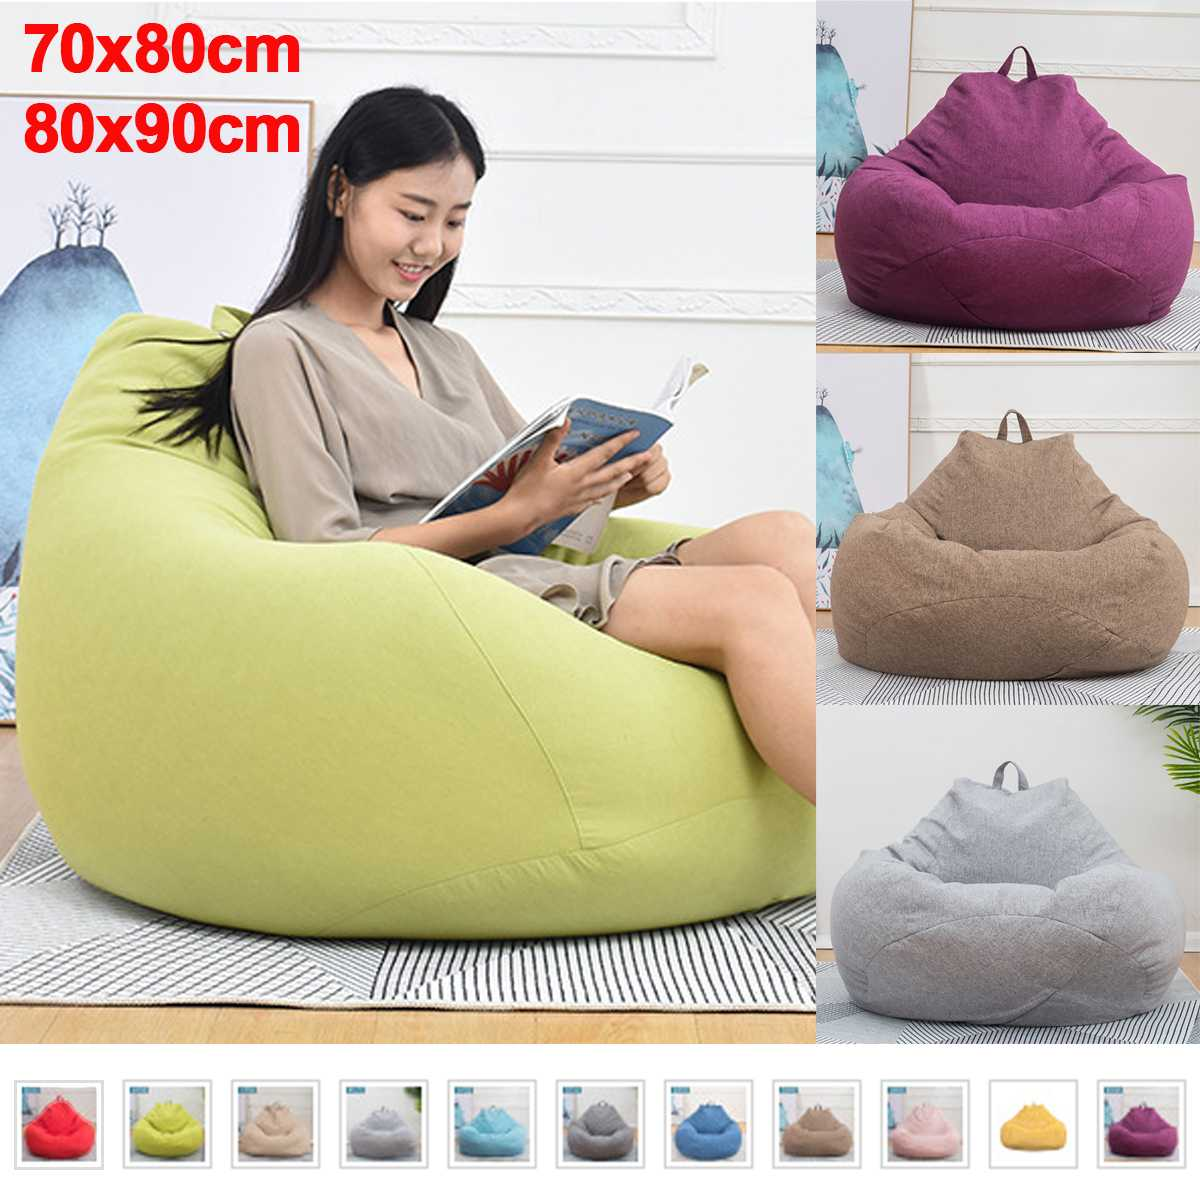 Lazy BeanBag Sofas Bean Bag Sofa Cover Chairs Pouf Puff Couch Cotton Linen Cloth Lounger Seat Tatami Living Room Furniture